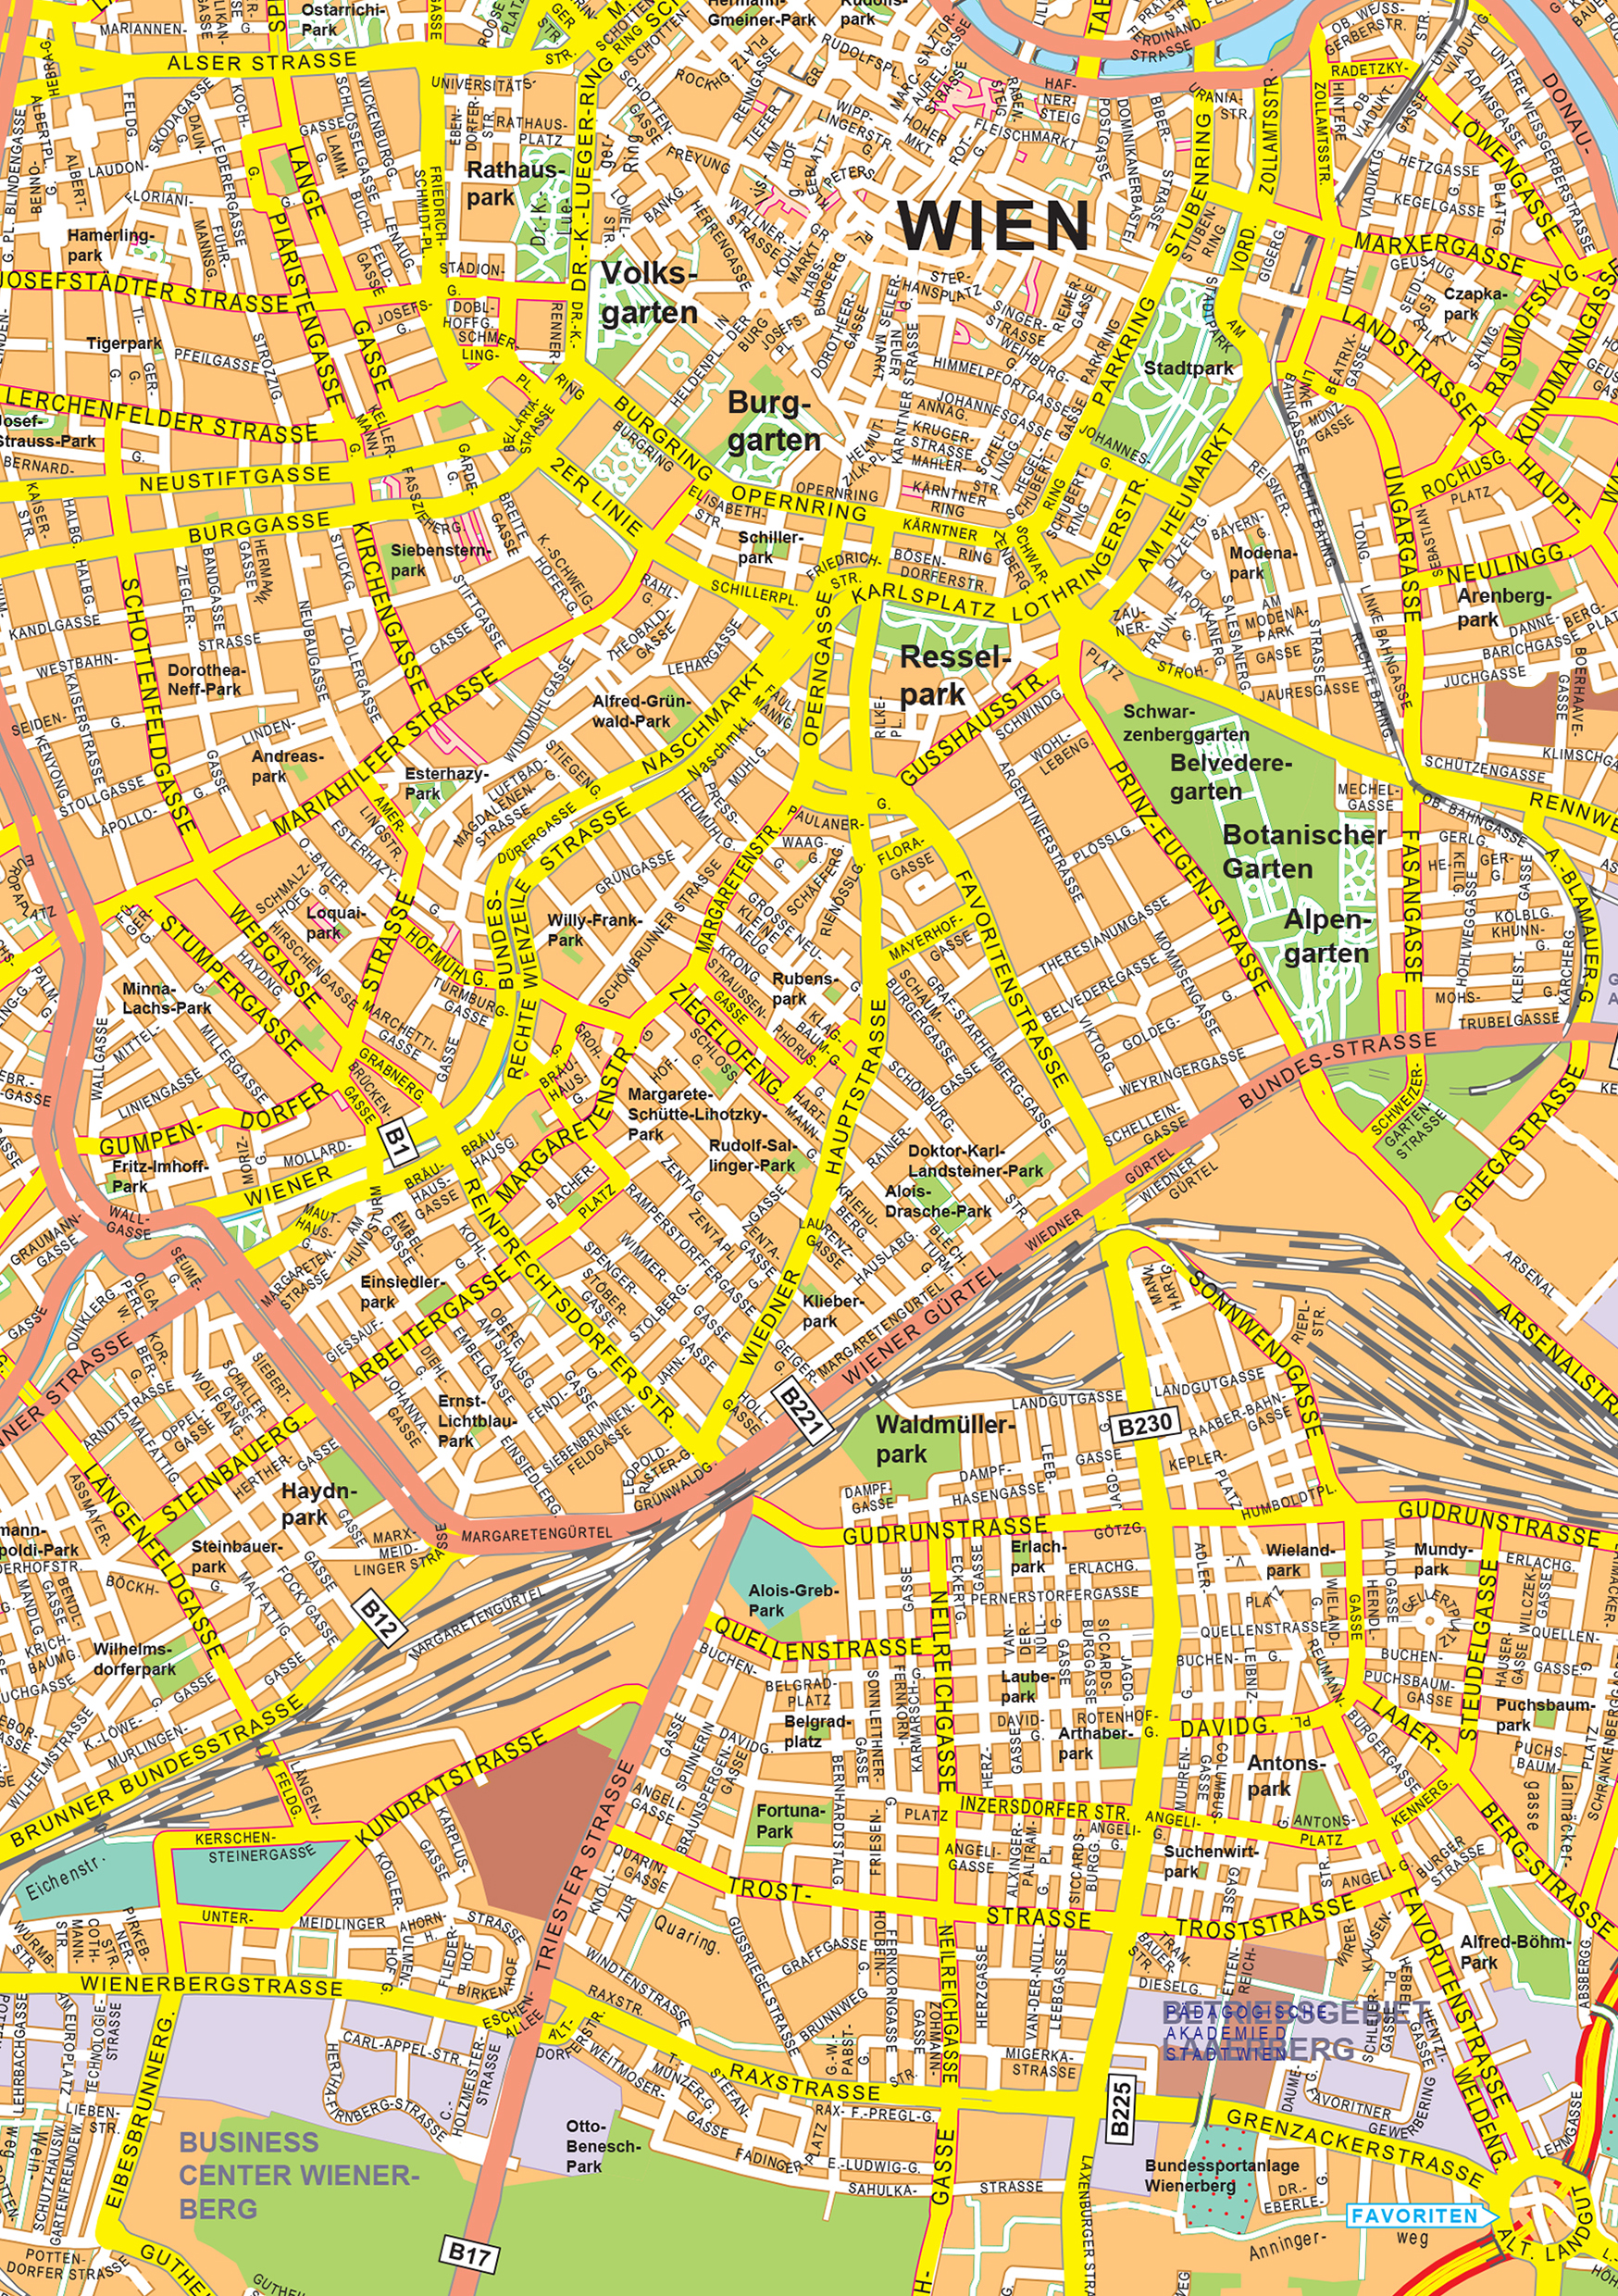 Digital city map vienna 500 the world of maps download sample gumiabroncs Choice Image